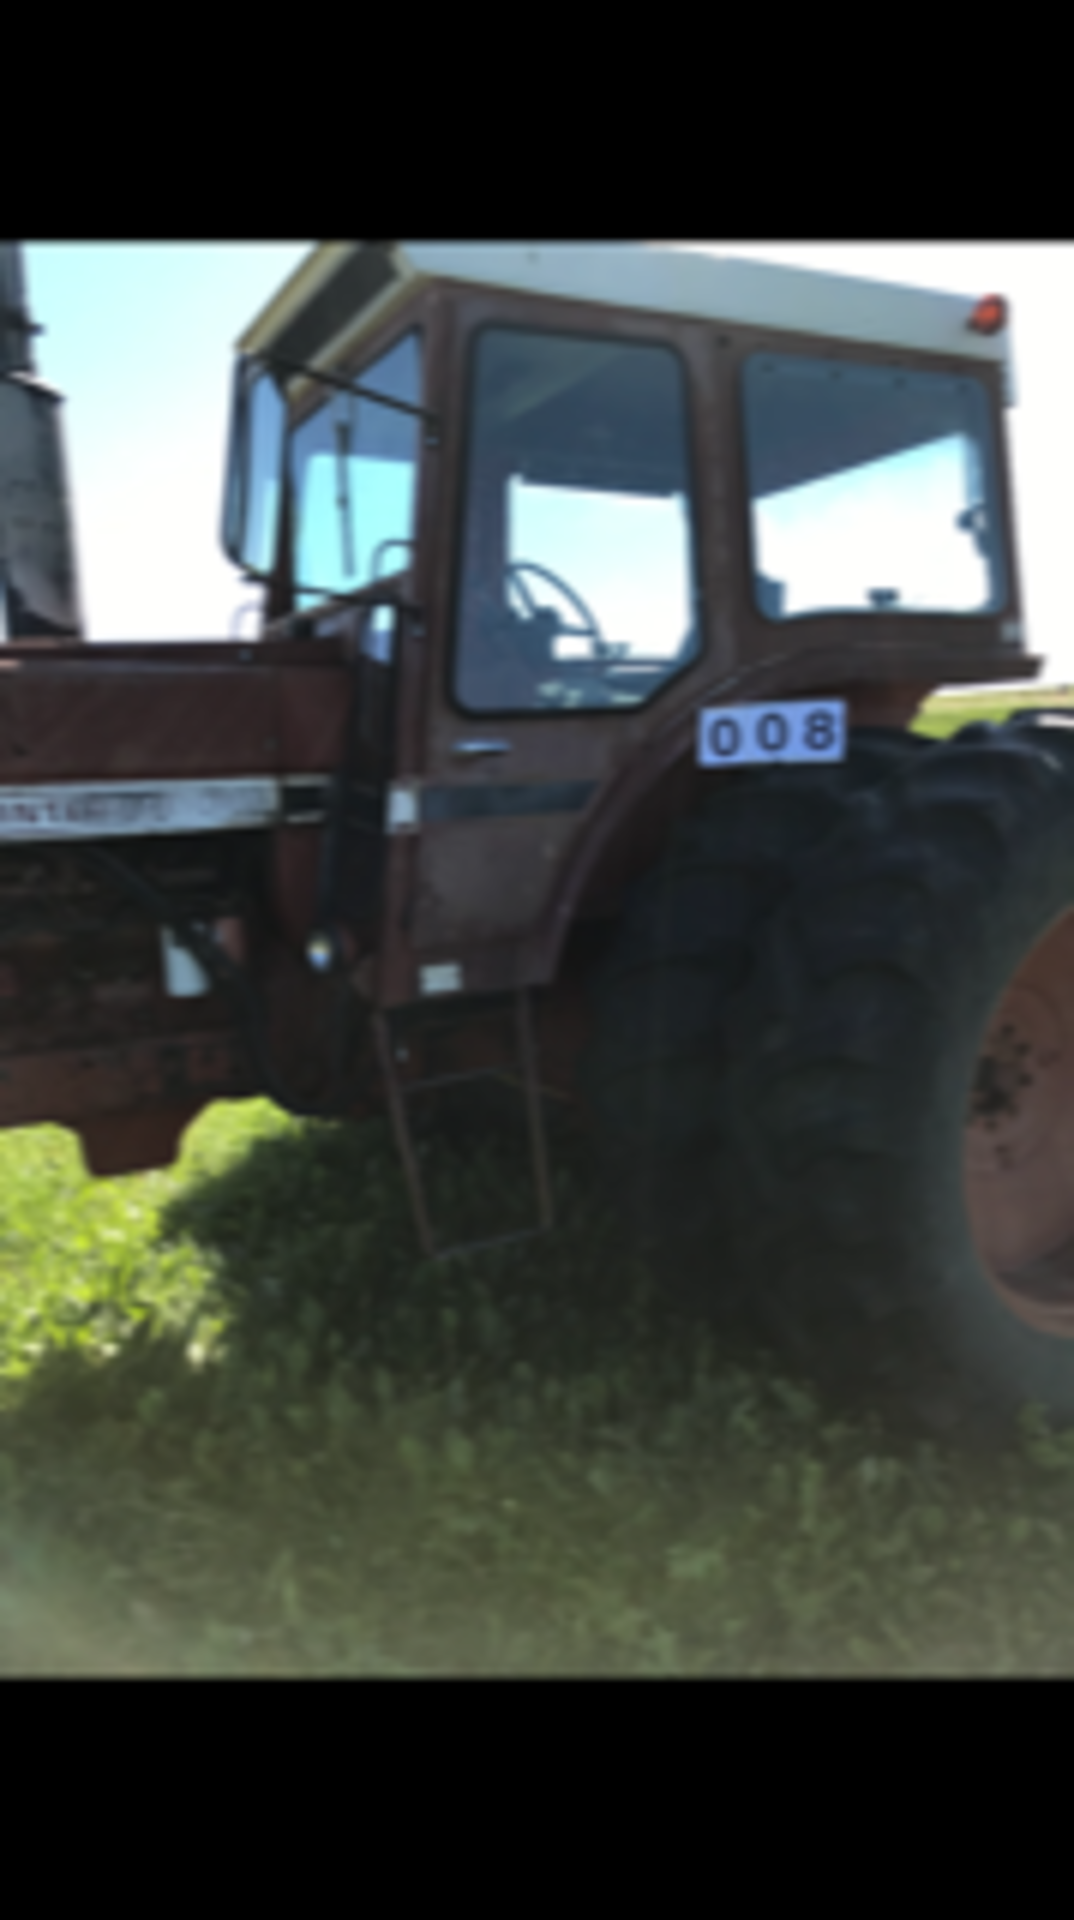 IHC 1466 Tractor, cab,540 - 1000 pto, 6979 hrs. showing sn:2650134U030334